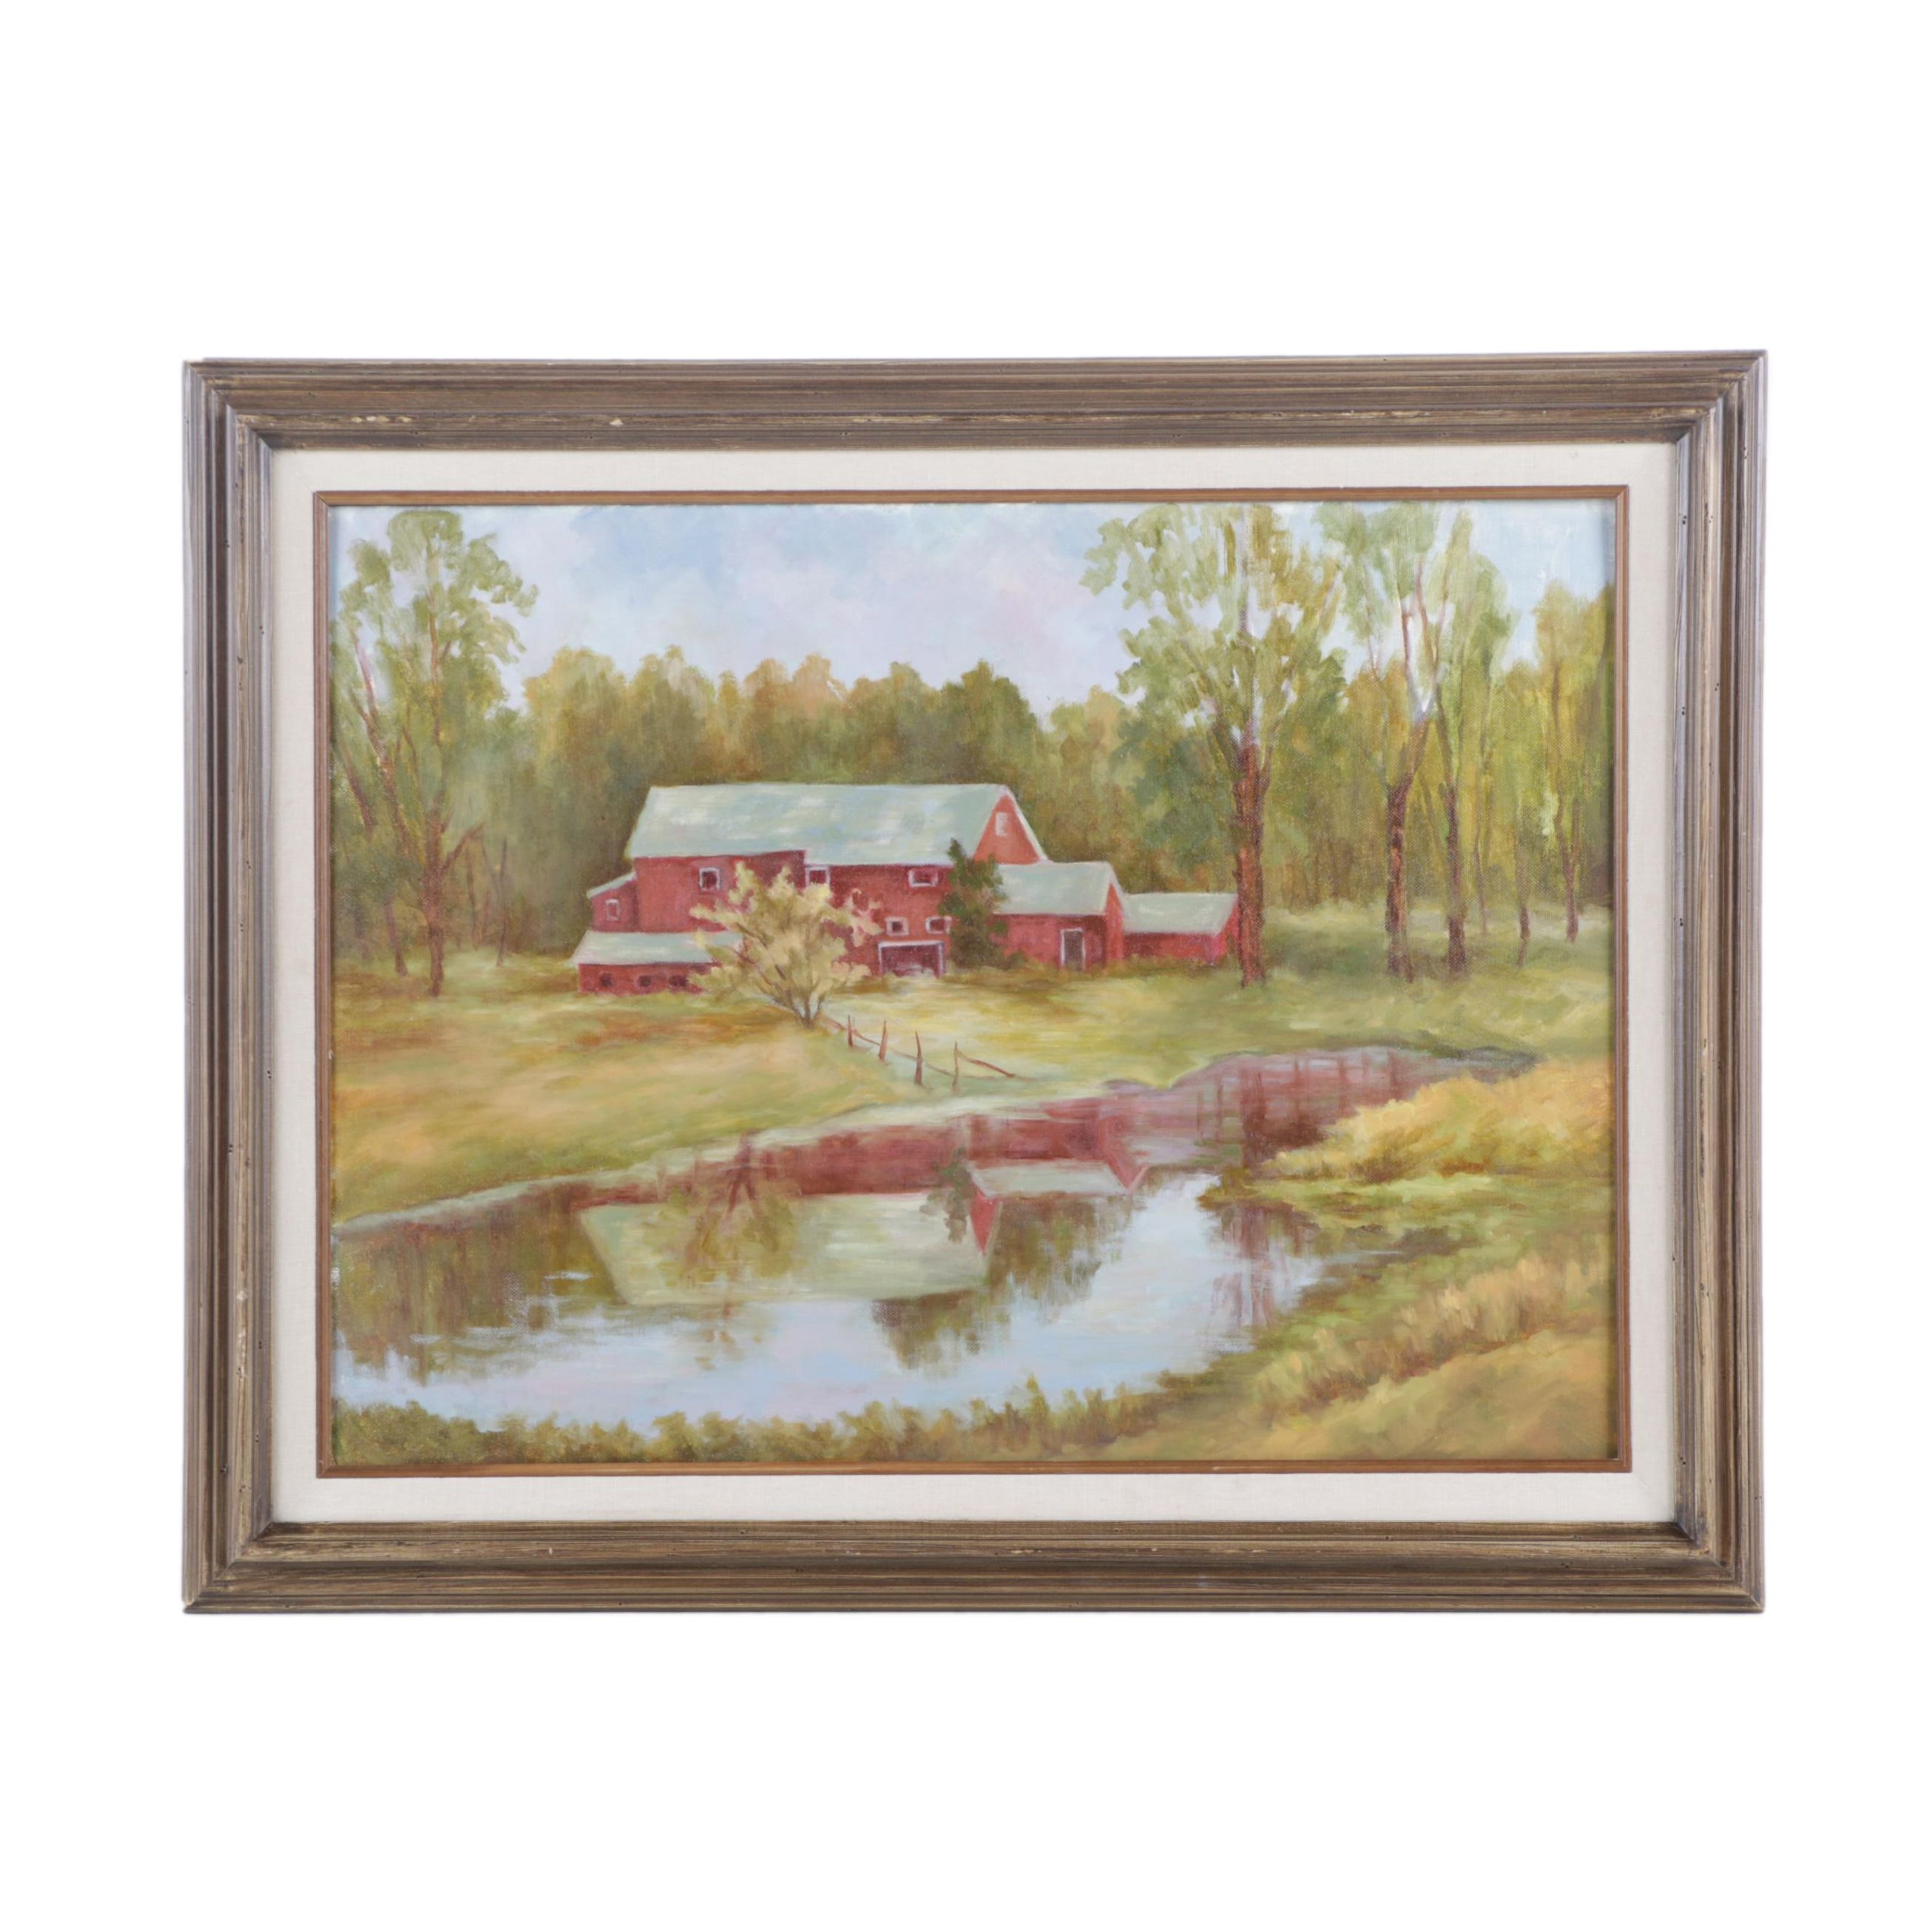 Oil Painting on Canvas Board of Barn